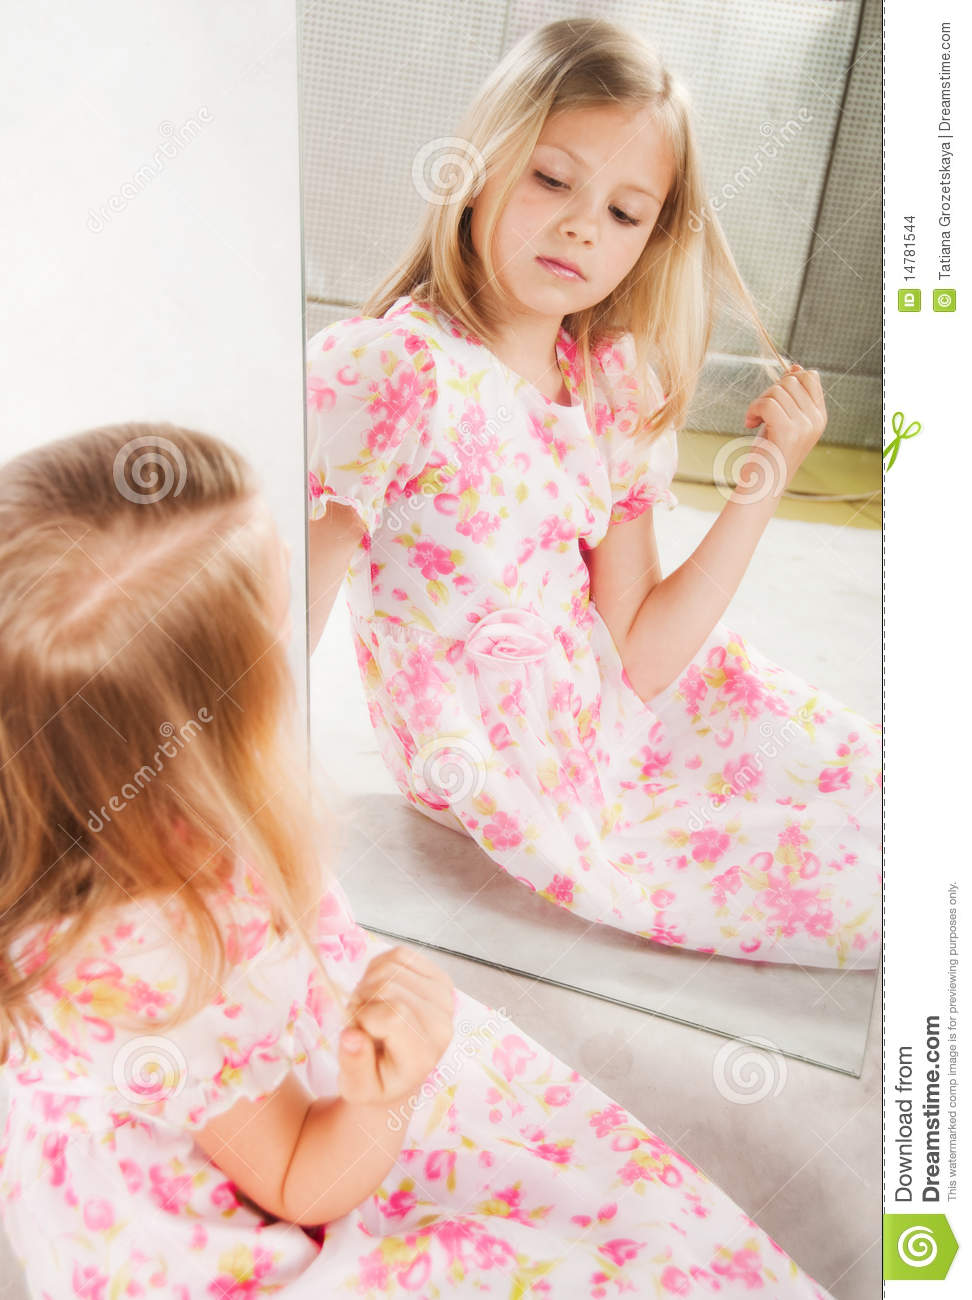 Little girl looking at mirror studio portrait stock for Mirror 7th girl